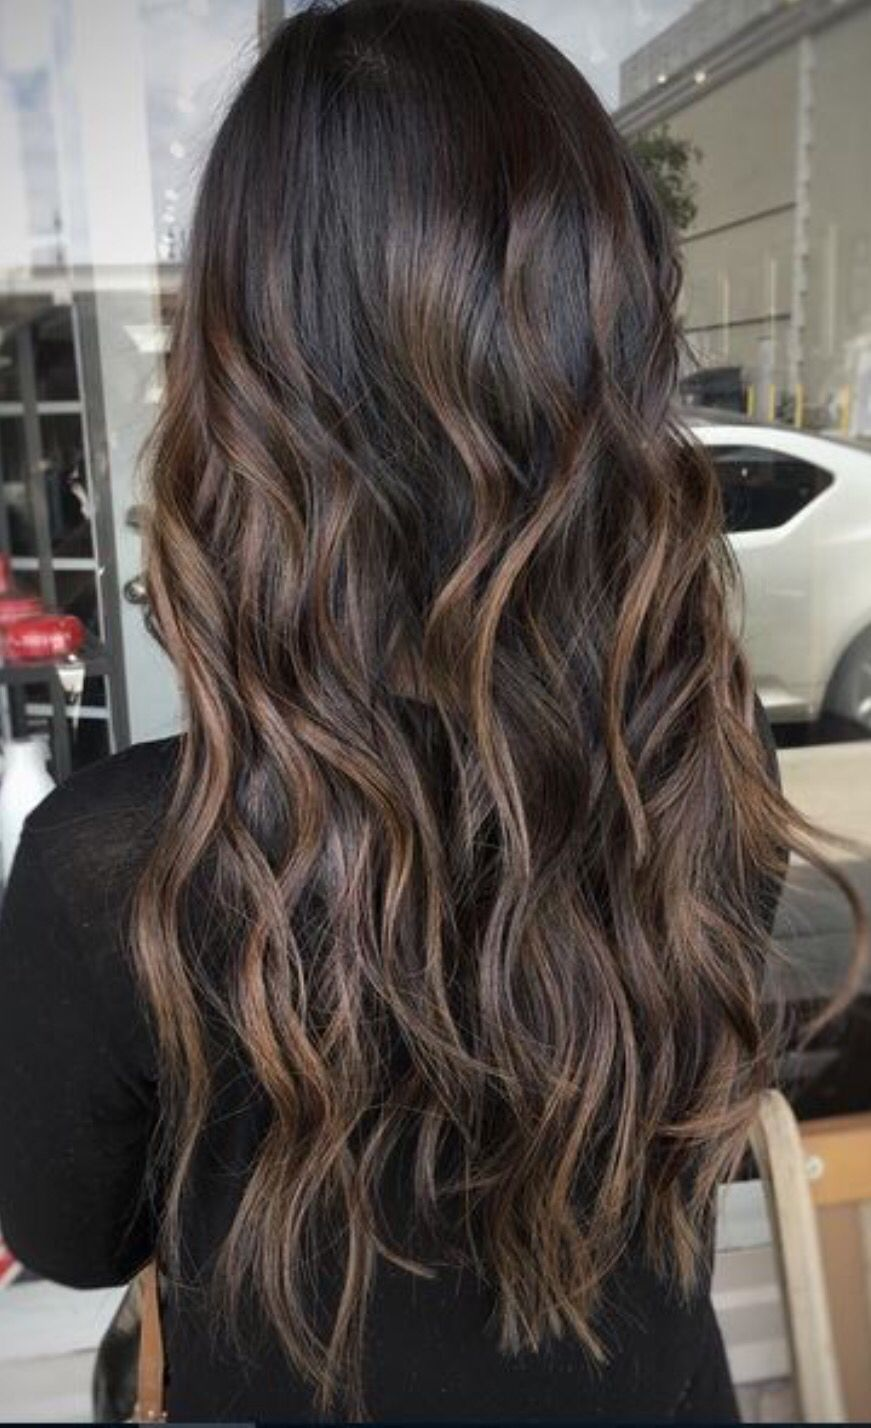 Images about hair colors and styles on pinterest - Hair Inspiration